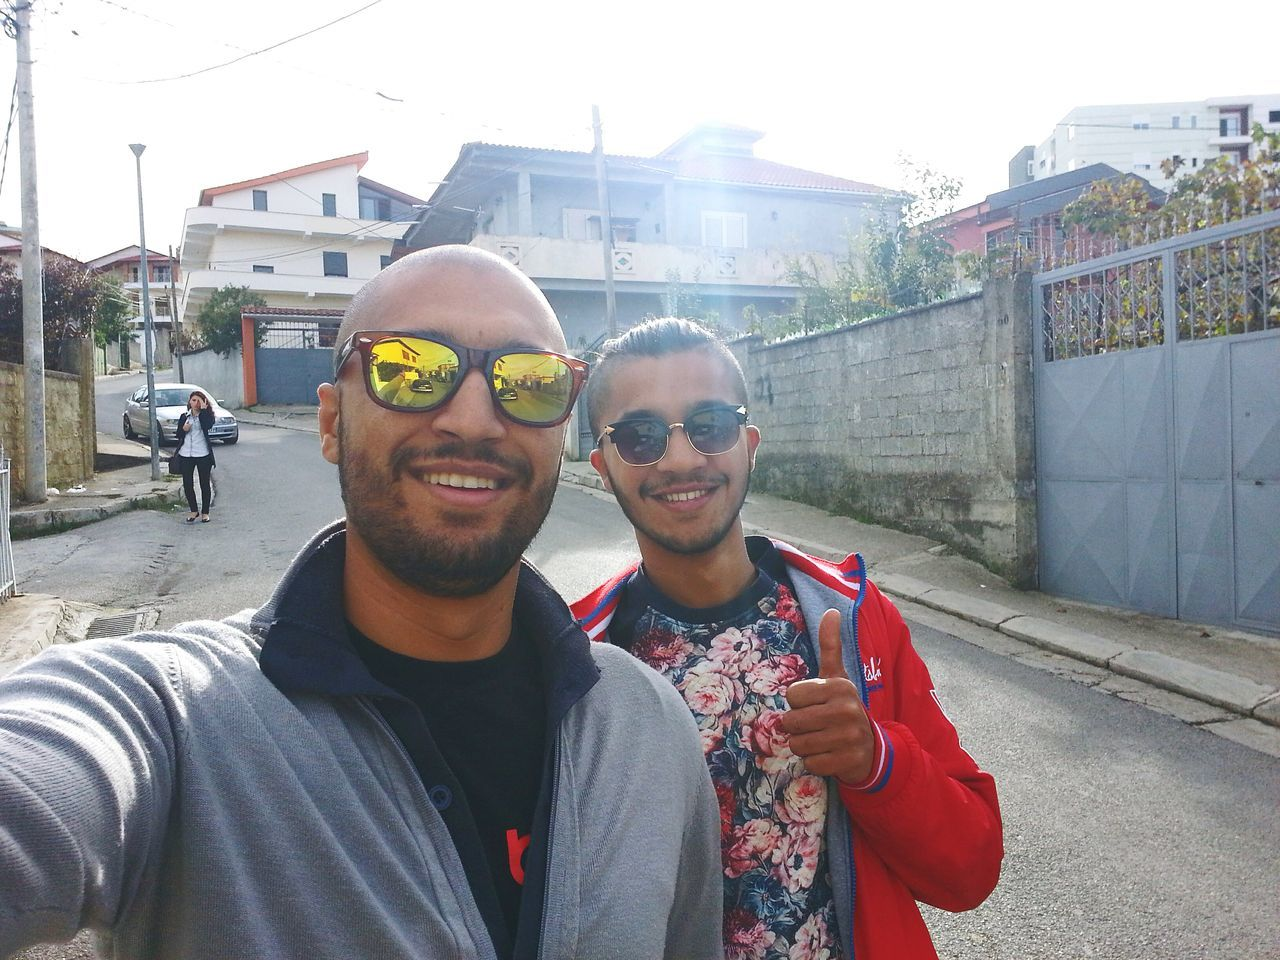 looking at camera, smiling, portrait, happiness, real people, two people, built structure, young adult, architecture, lifestyles, young men, day, leisure activity, mid adult men, togetherness, building exterior, front view, outdoors, casual clothing, selfie, bonding, standing, cheerful, technology, men, young women, city, people